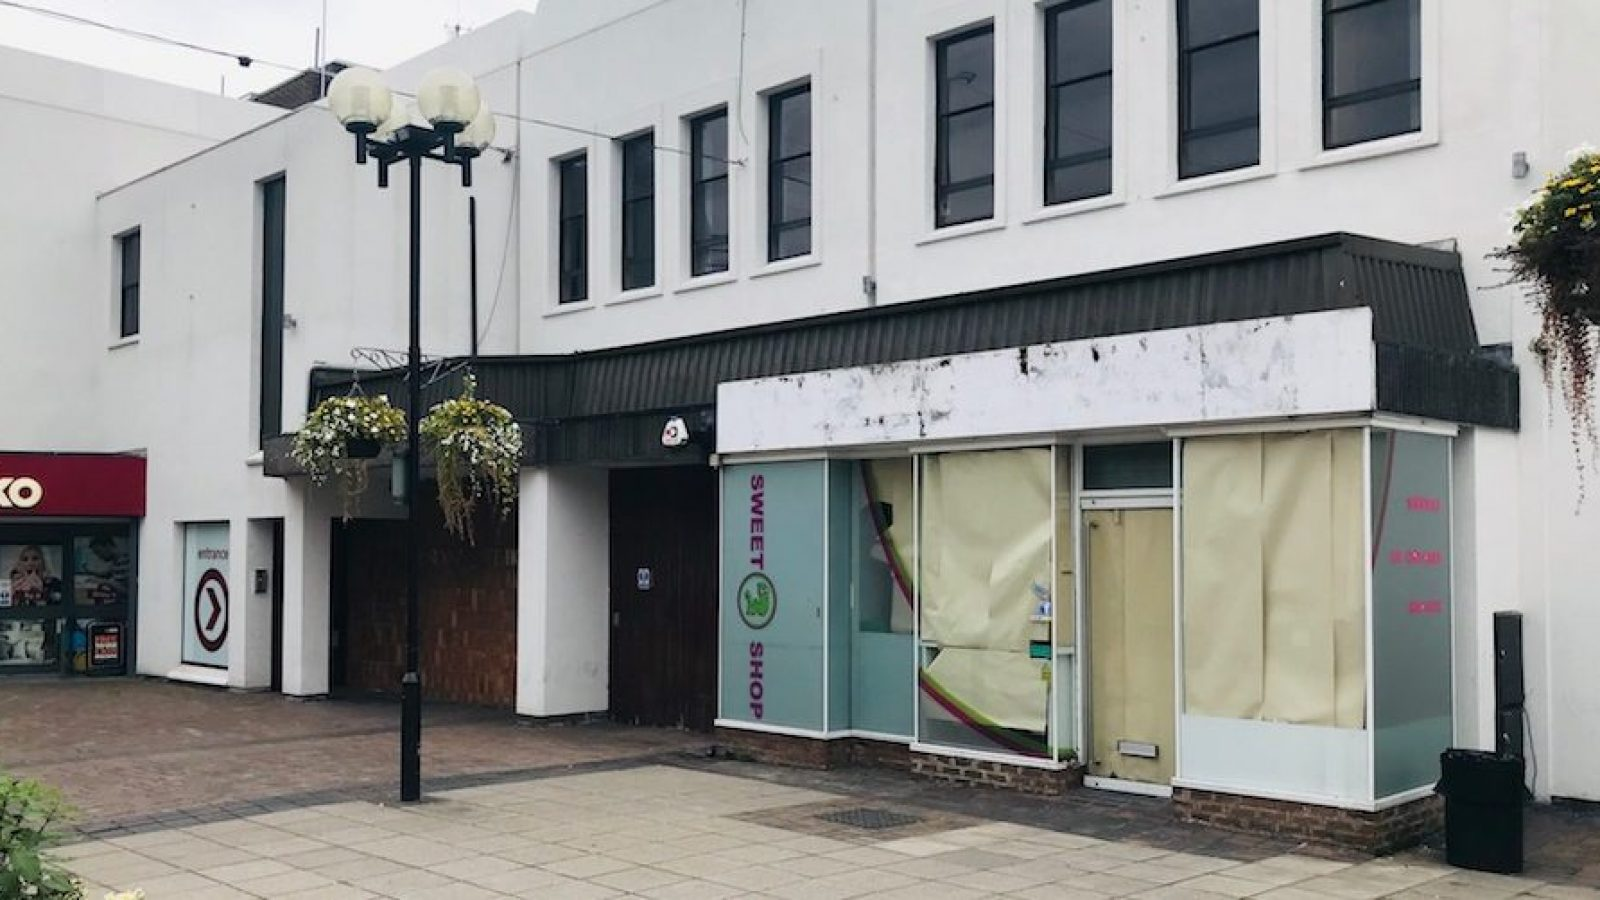 The Cheese Peddlers will move into the former Gummy worm unit at the bottom of the high street